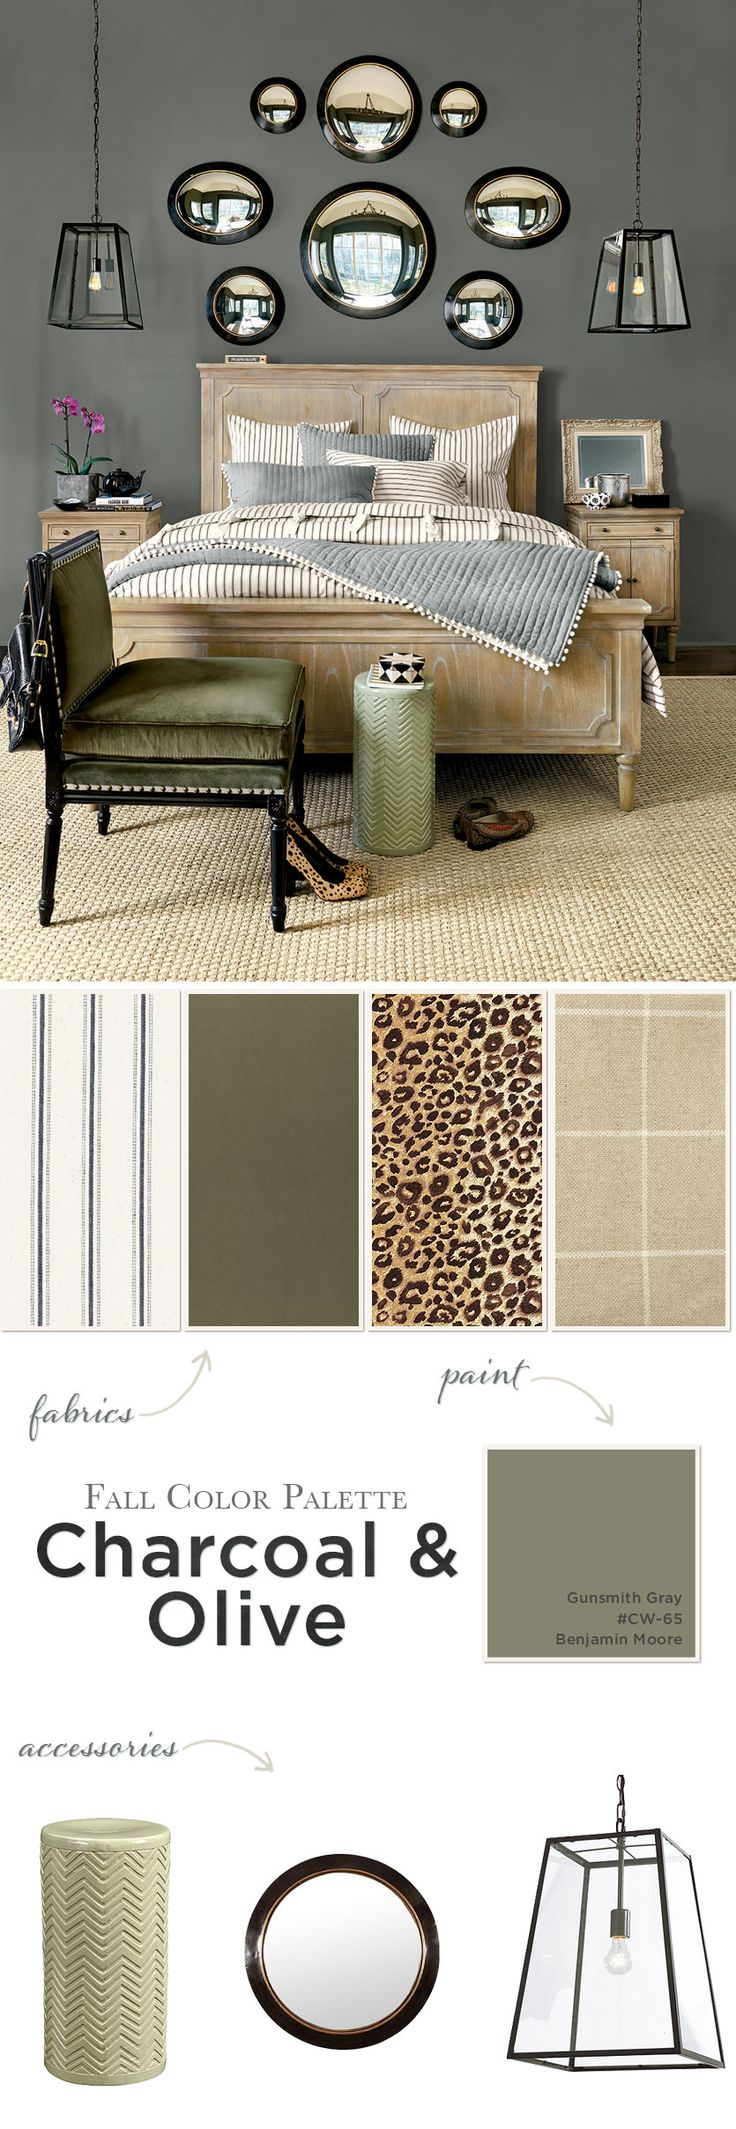 #Decorate you #house with Fall Color Palette: Charcoal & Olive. #HomeDesign